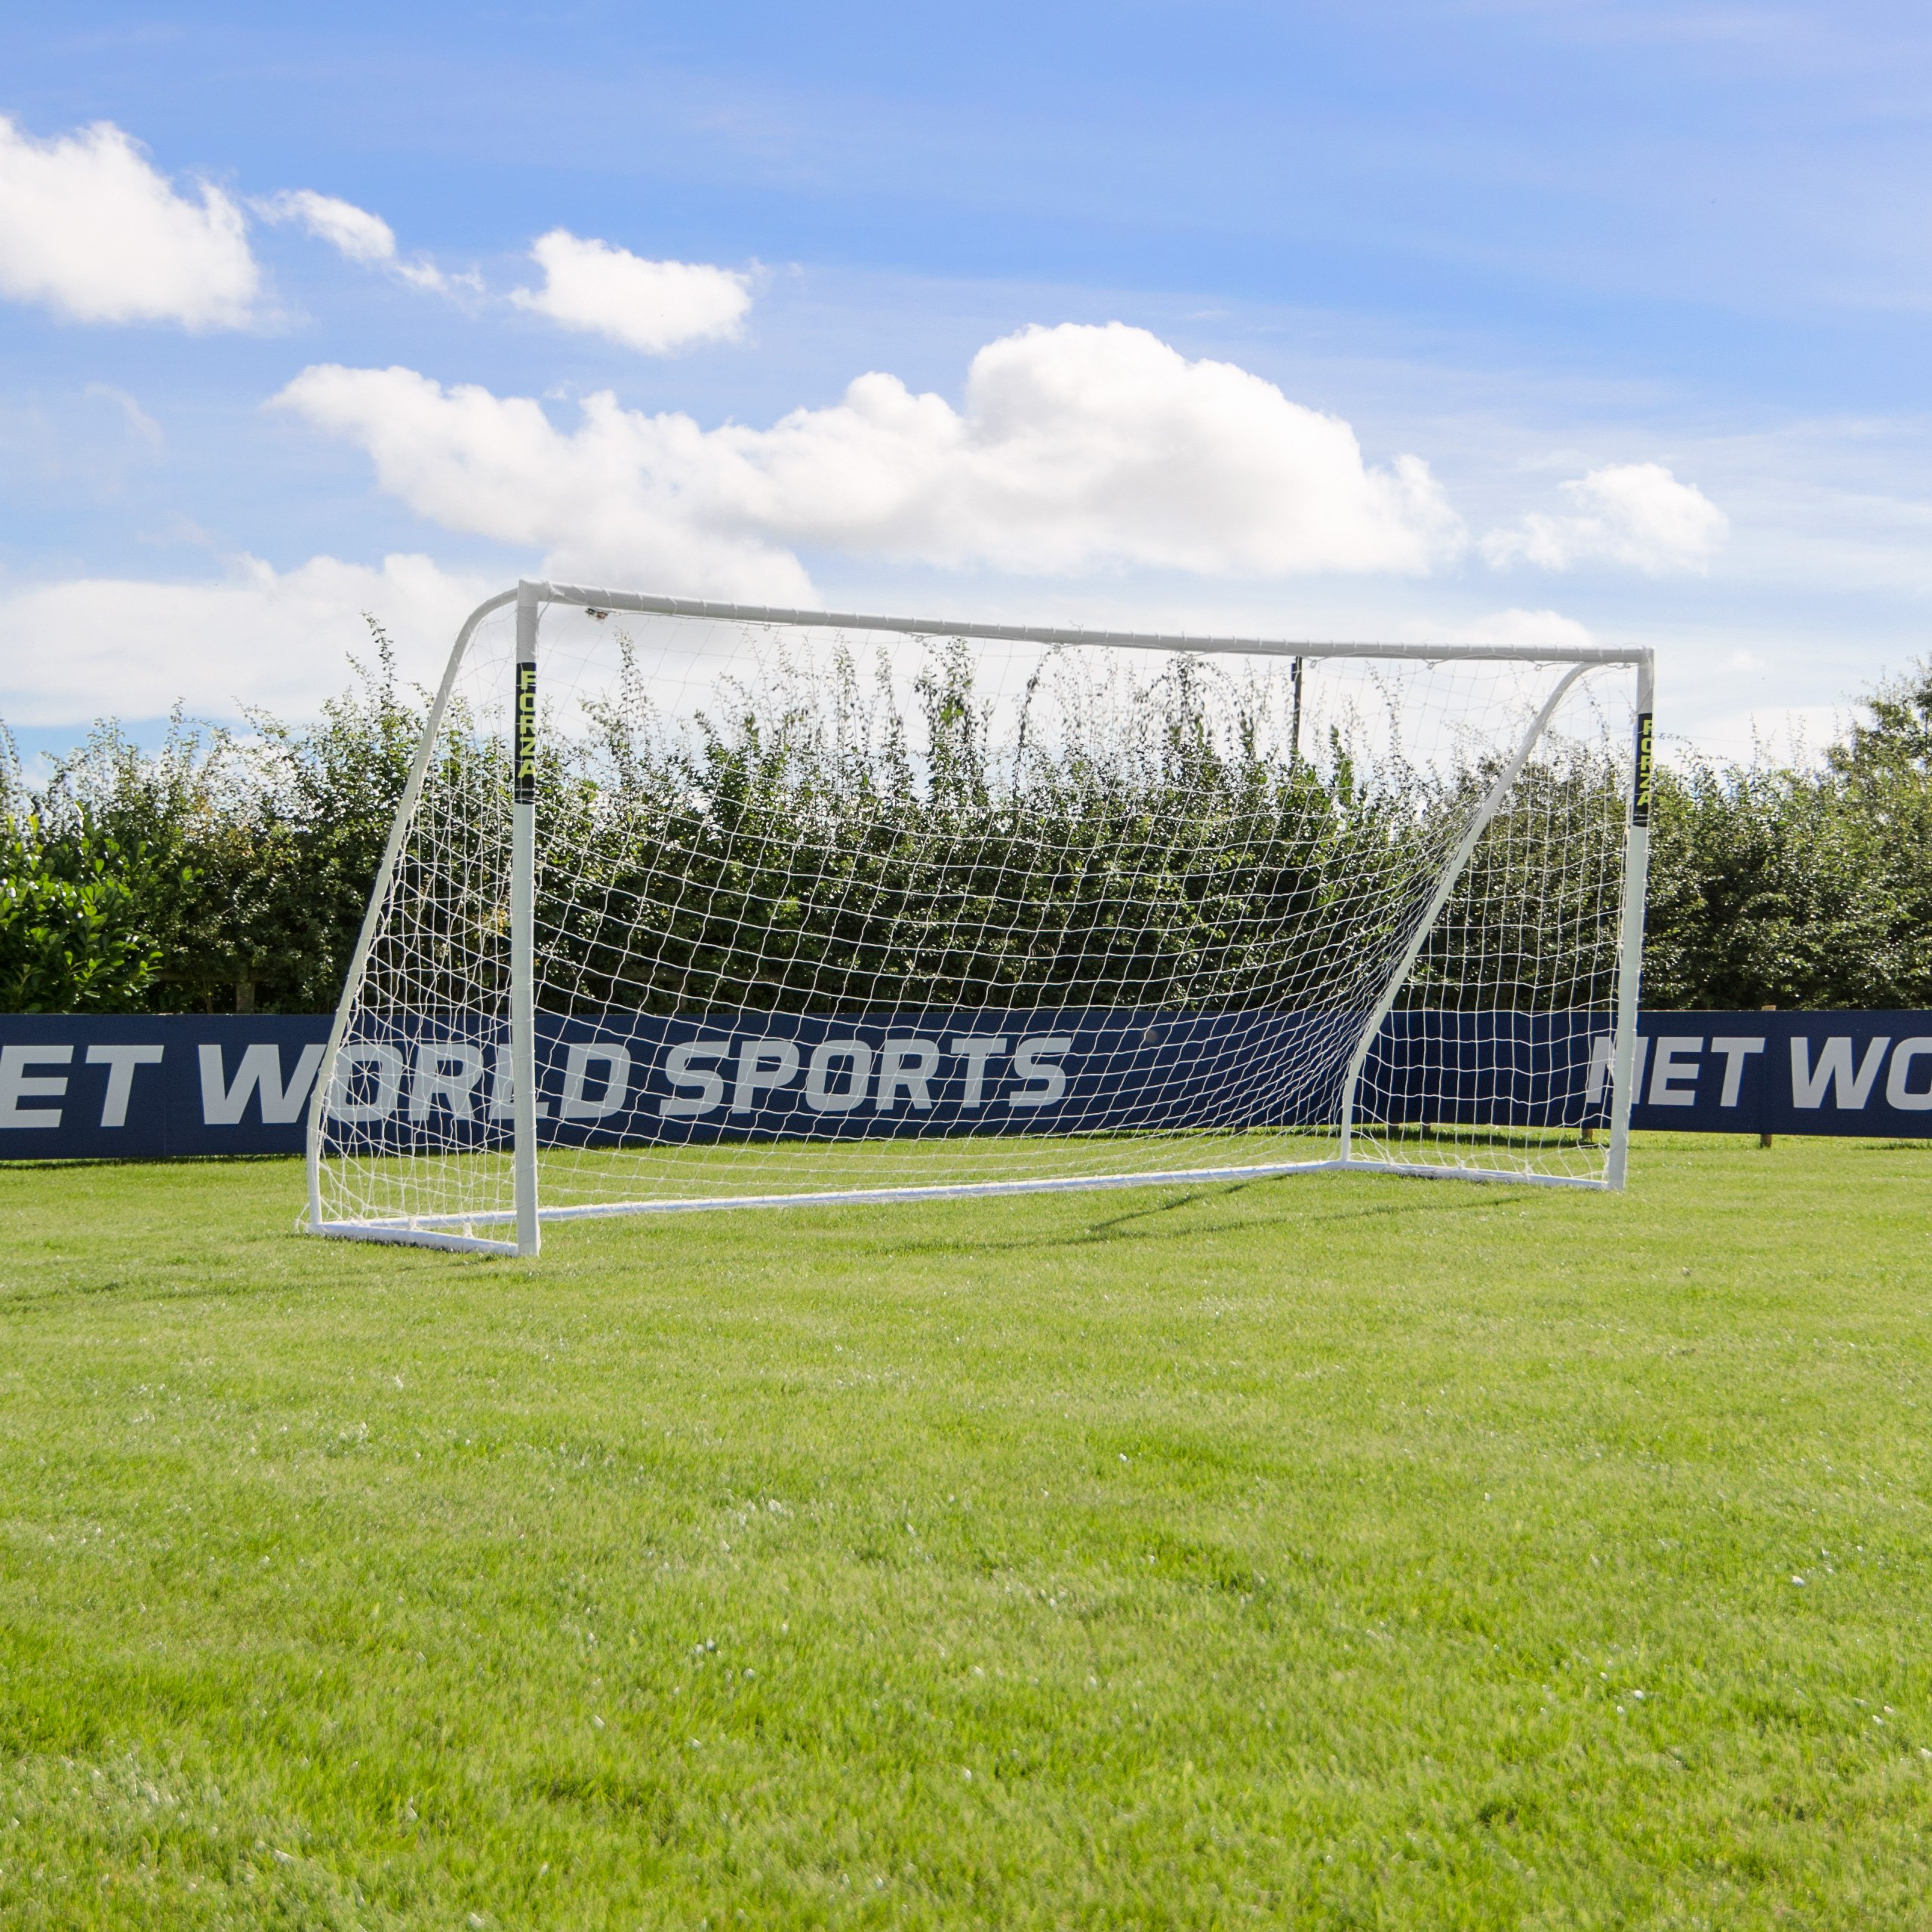 FORZA ''Match Standard'' 16' x 7' Professional Soccer Goal and Net [Net World Sports]